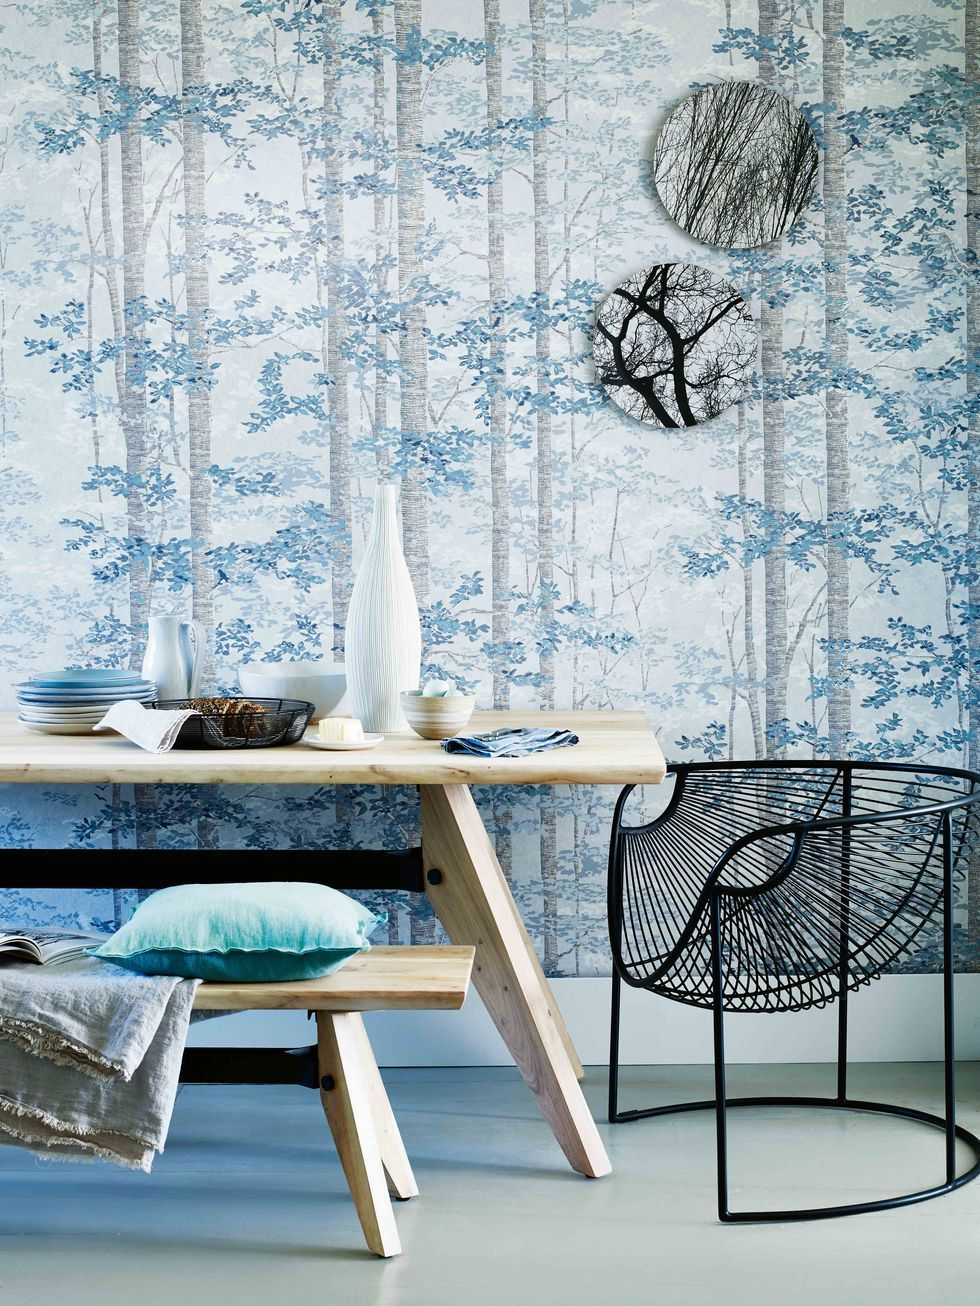 How To Bring The Outside In With Nature Inspired Wallpaper Murals Mural Wallpaper Home Decor Interior